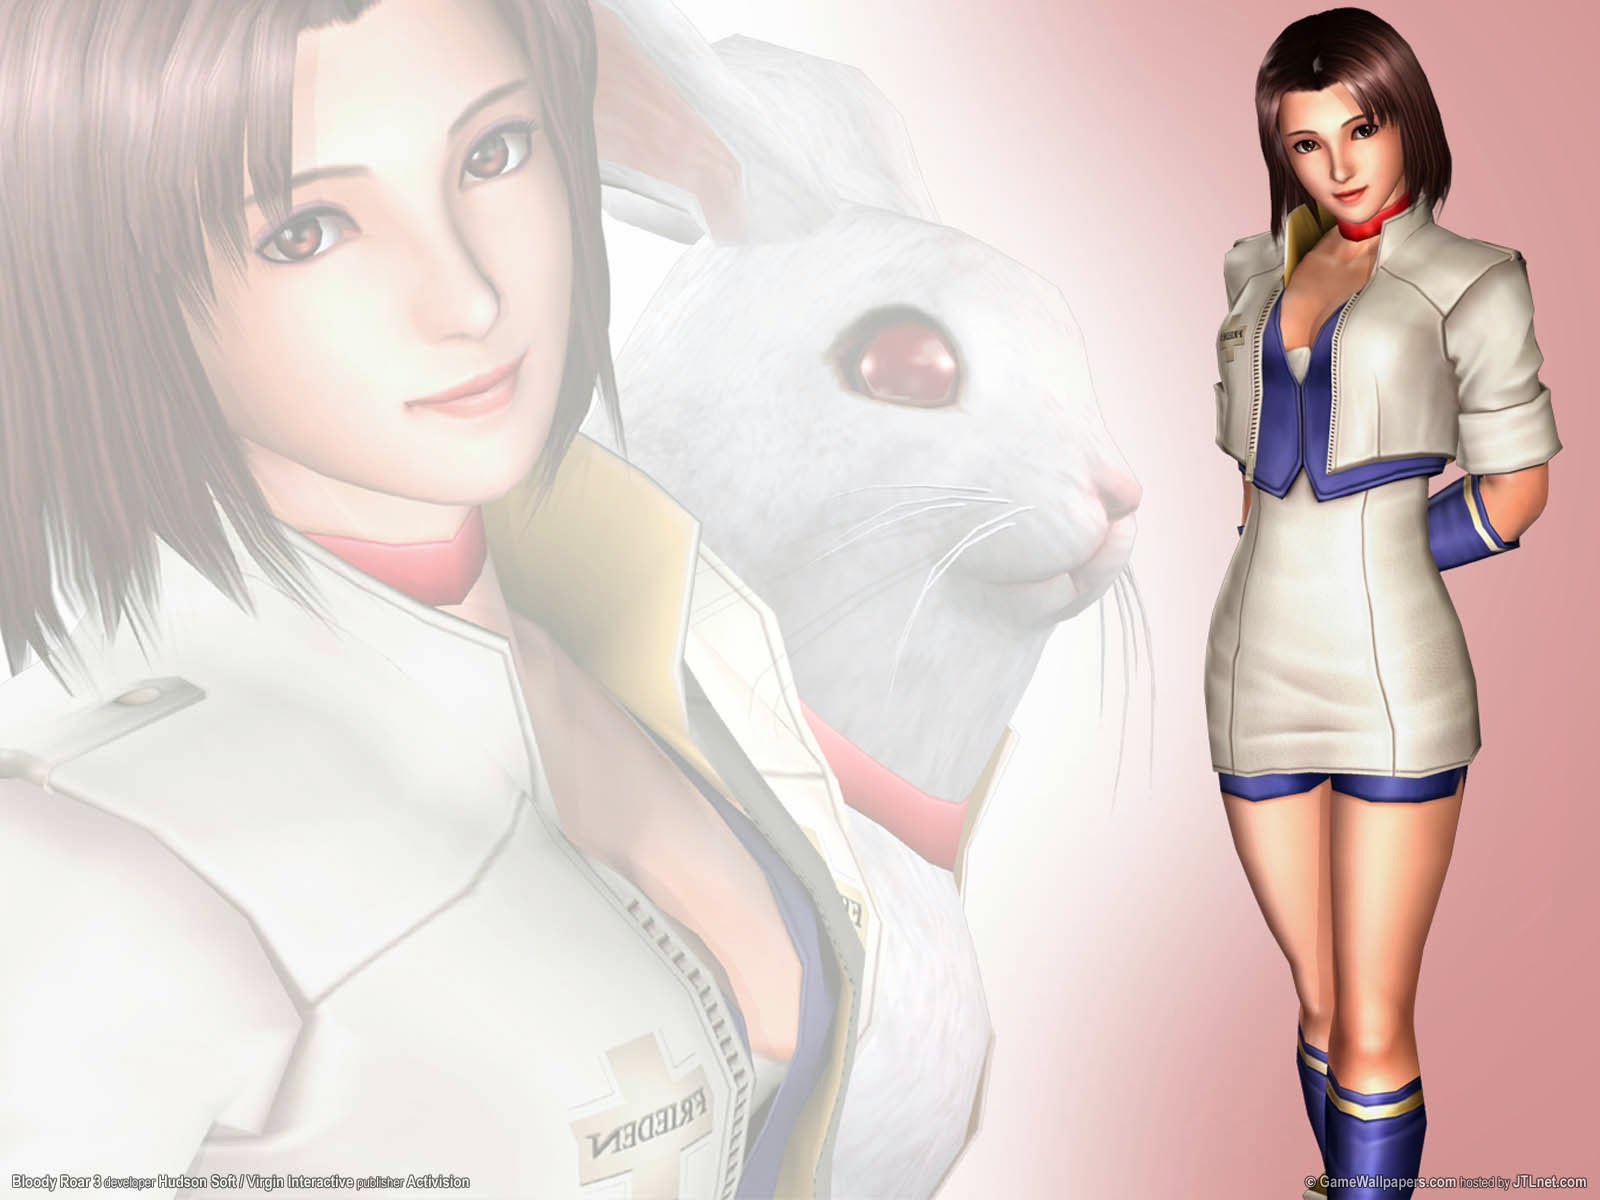 Bloody roar hentain xxx clips